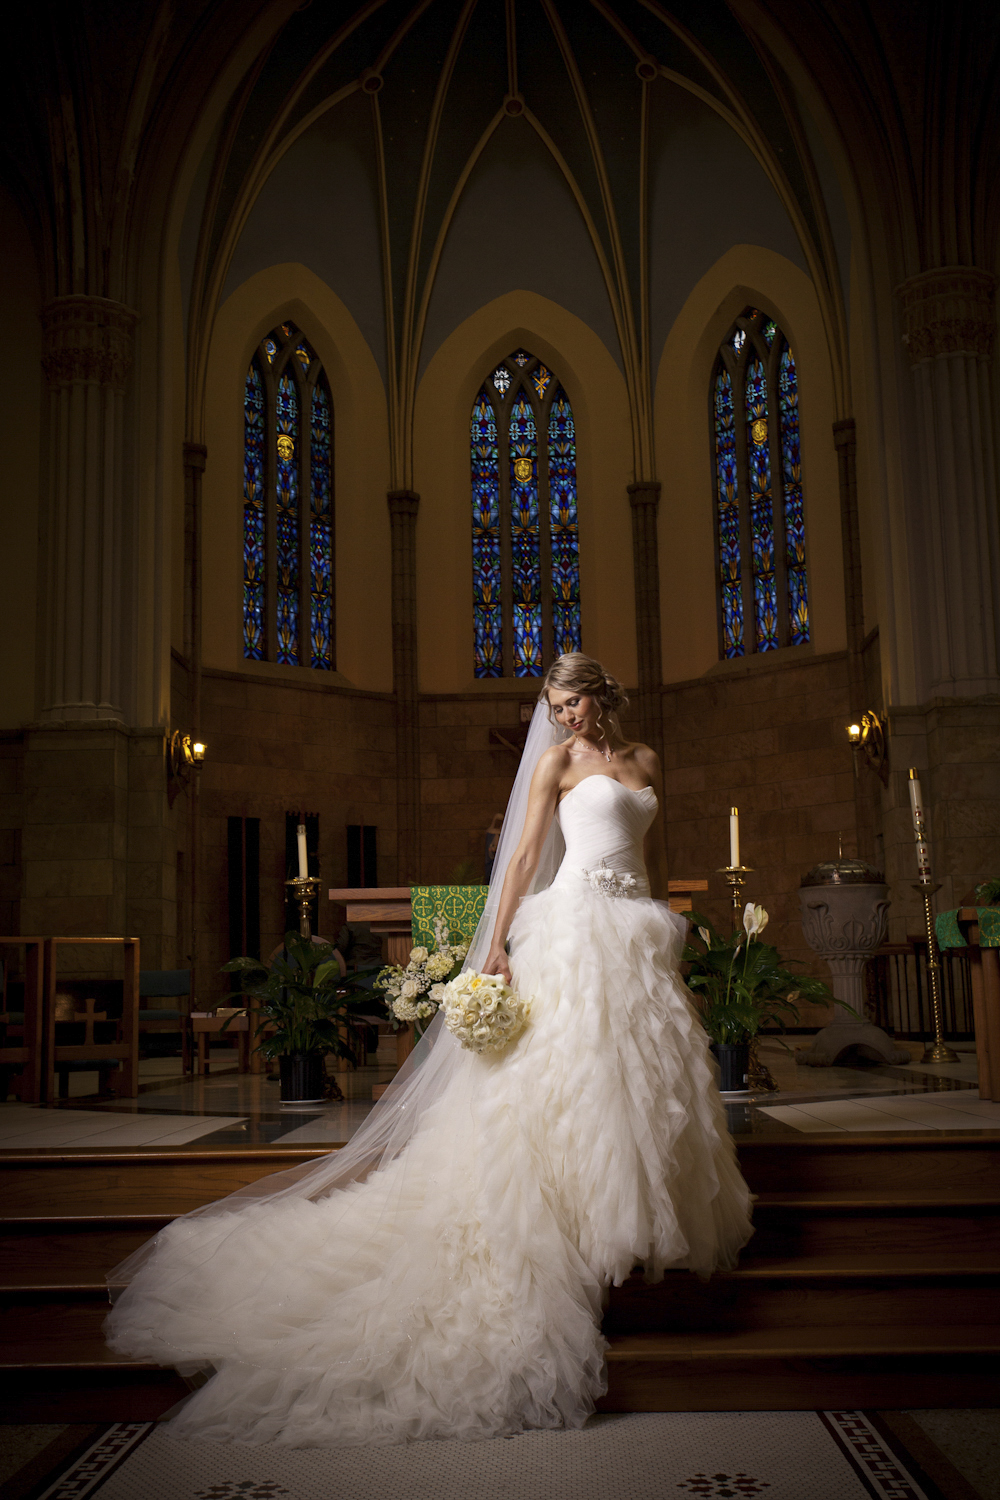 Saint-Marys-Cathedral-Indianapolis-Indiana-Wedding-Photographer-Crowes-Eye-Photography-419.jpg